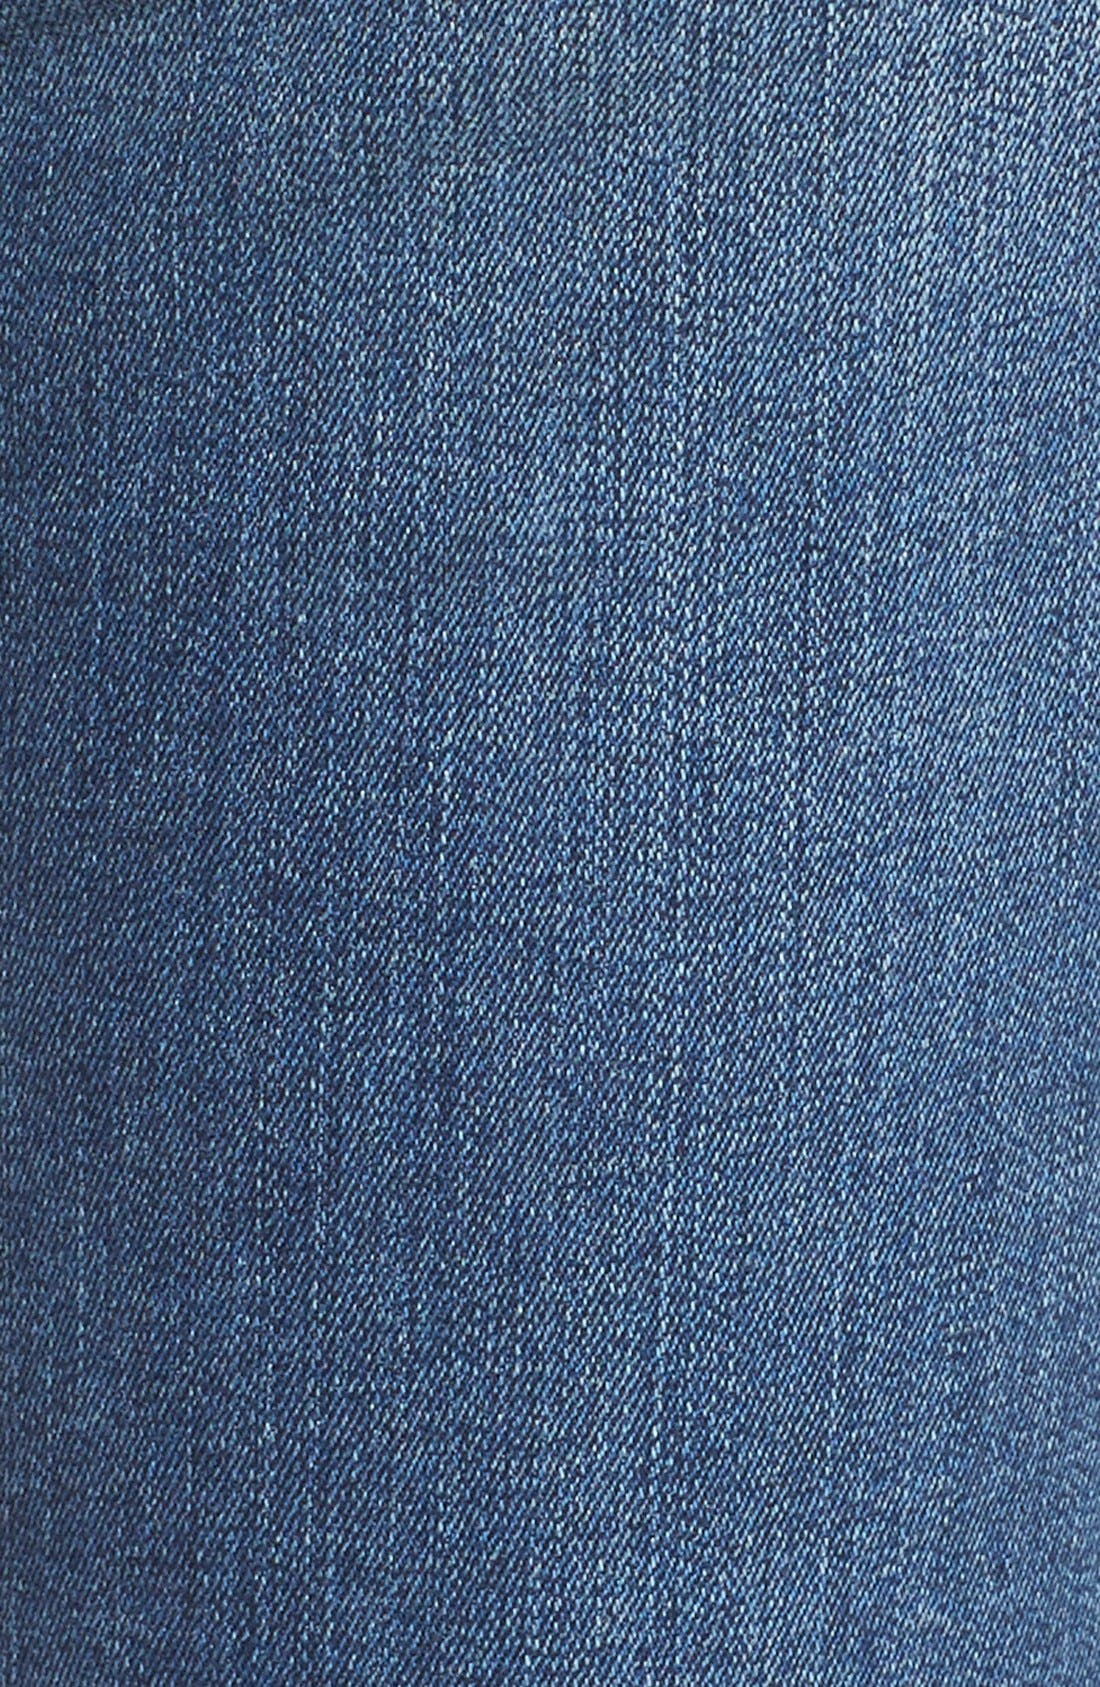 'Clarissa' Stretch Ankle Skinny Jeans,                             Alternate thumbnail 3, color,                             421